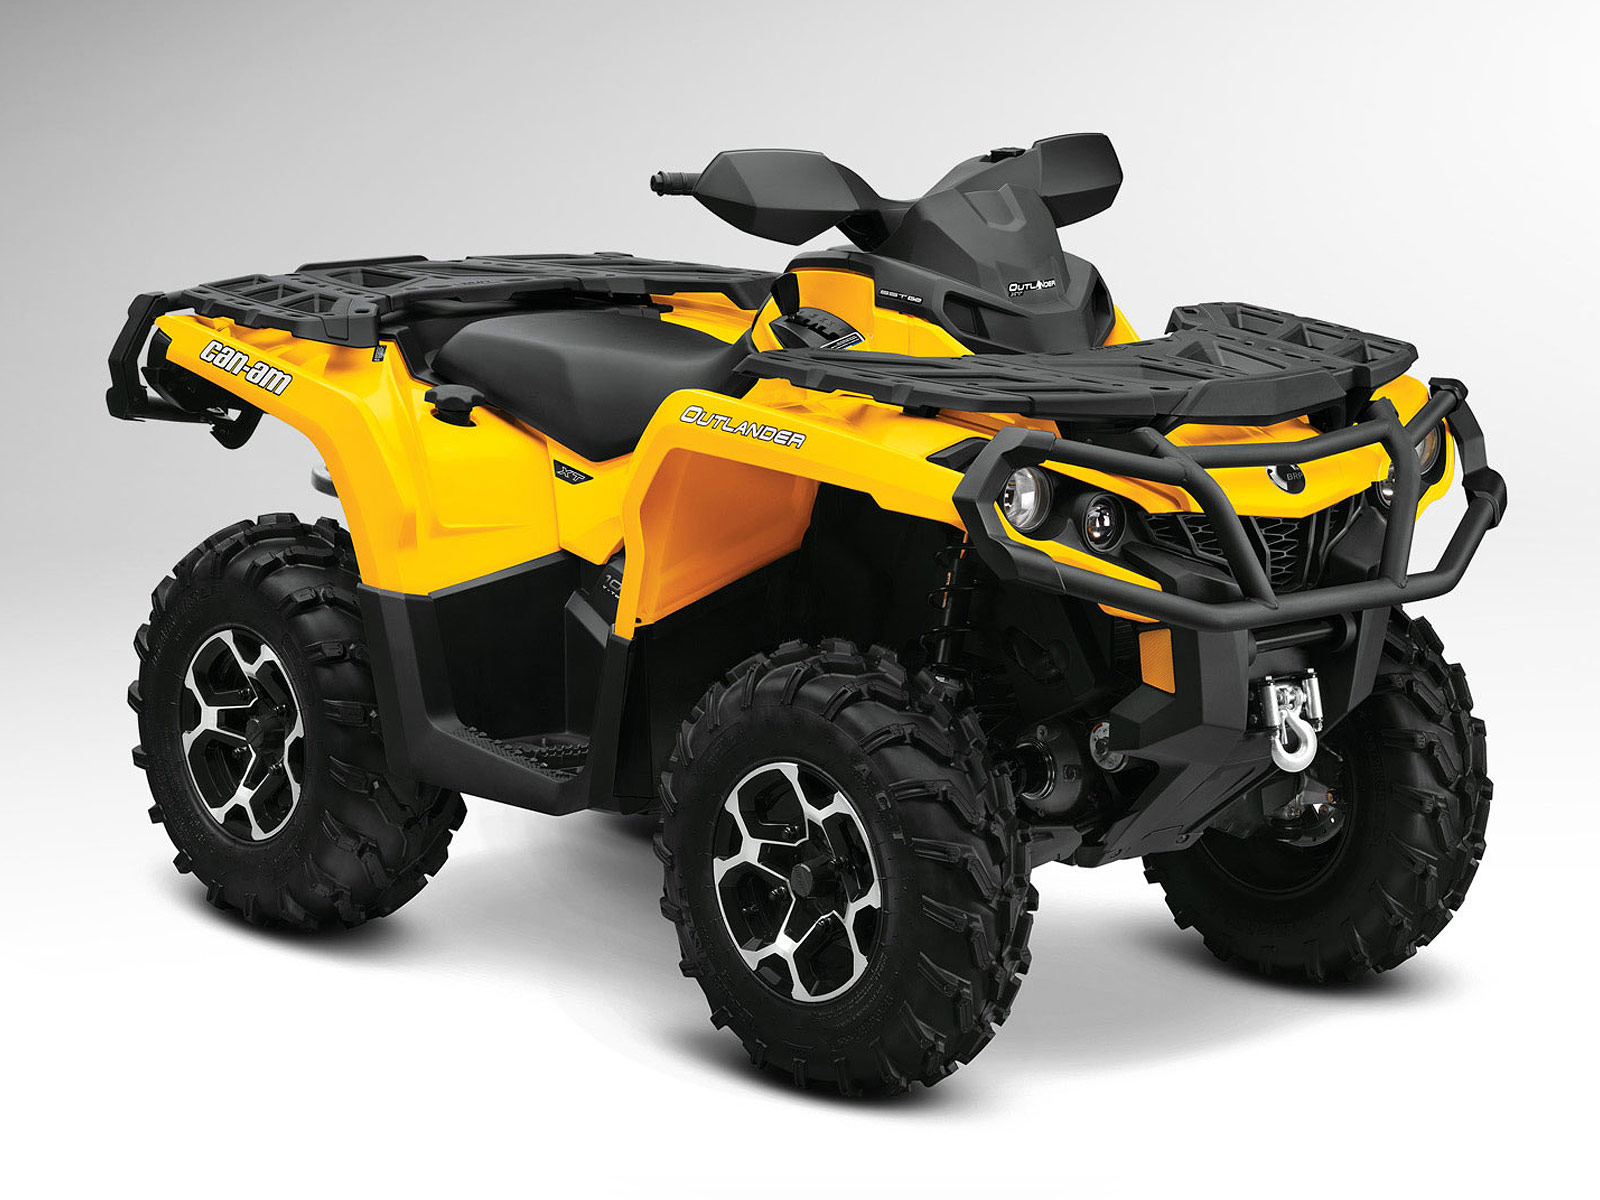 2012 canam outlander 1000xt insurance information. Black Bedroom Furniture Sets. Home Design Ideas